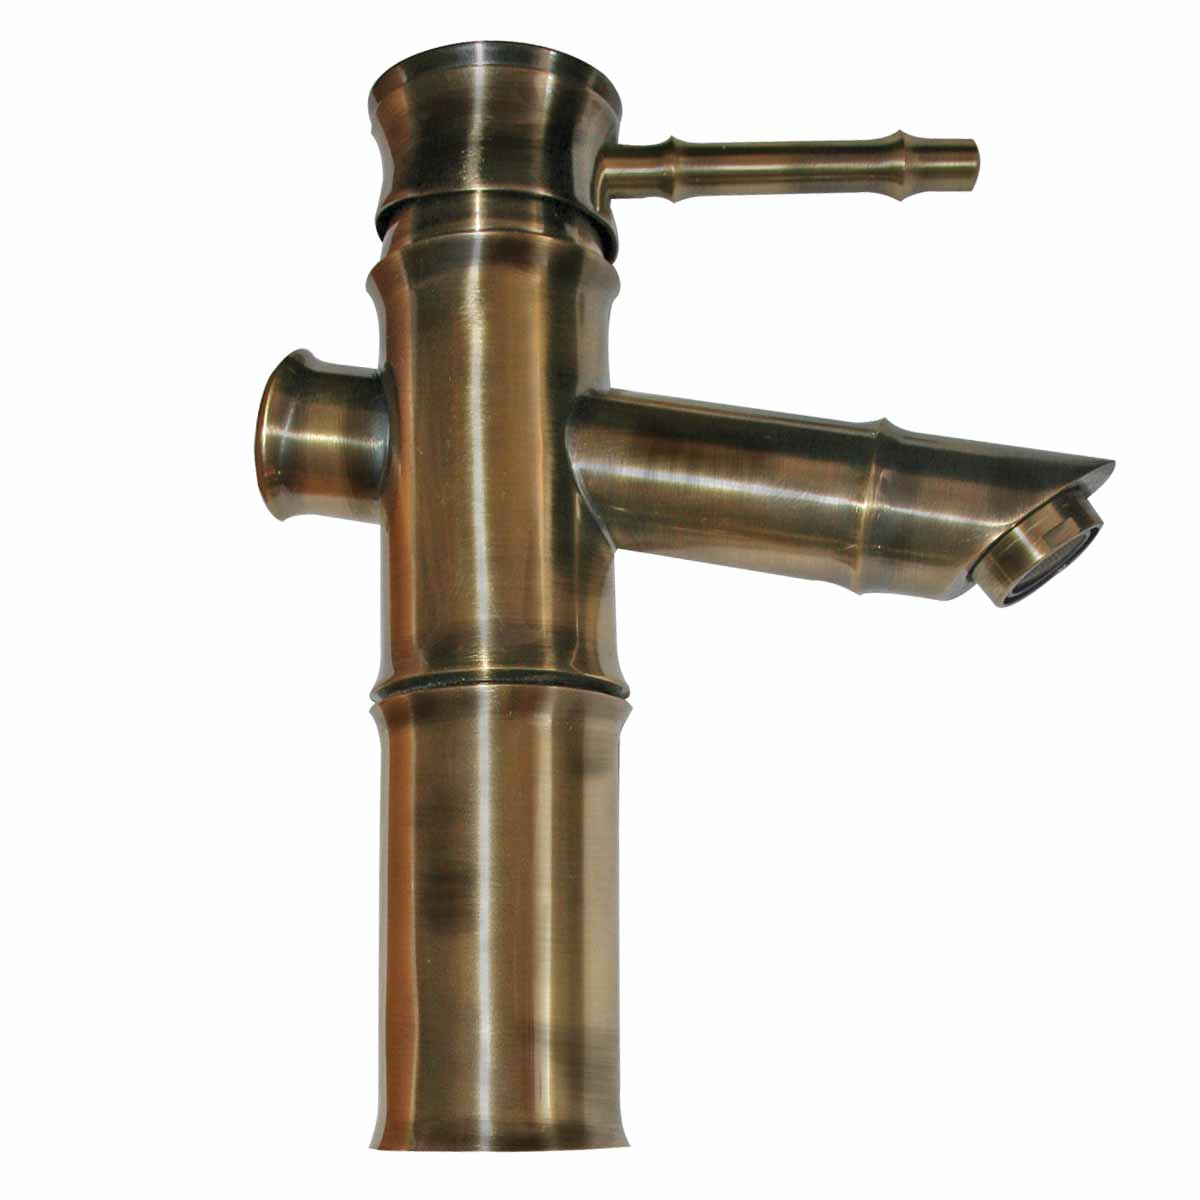 Brass Single Hole Bathroom Faucet : Bathroom Faucet Bamboo Antique Brass Single Hole 1 Handle